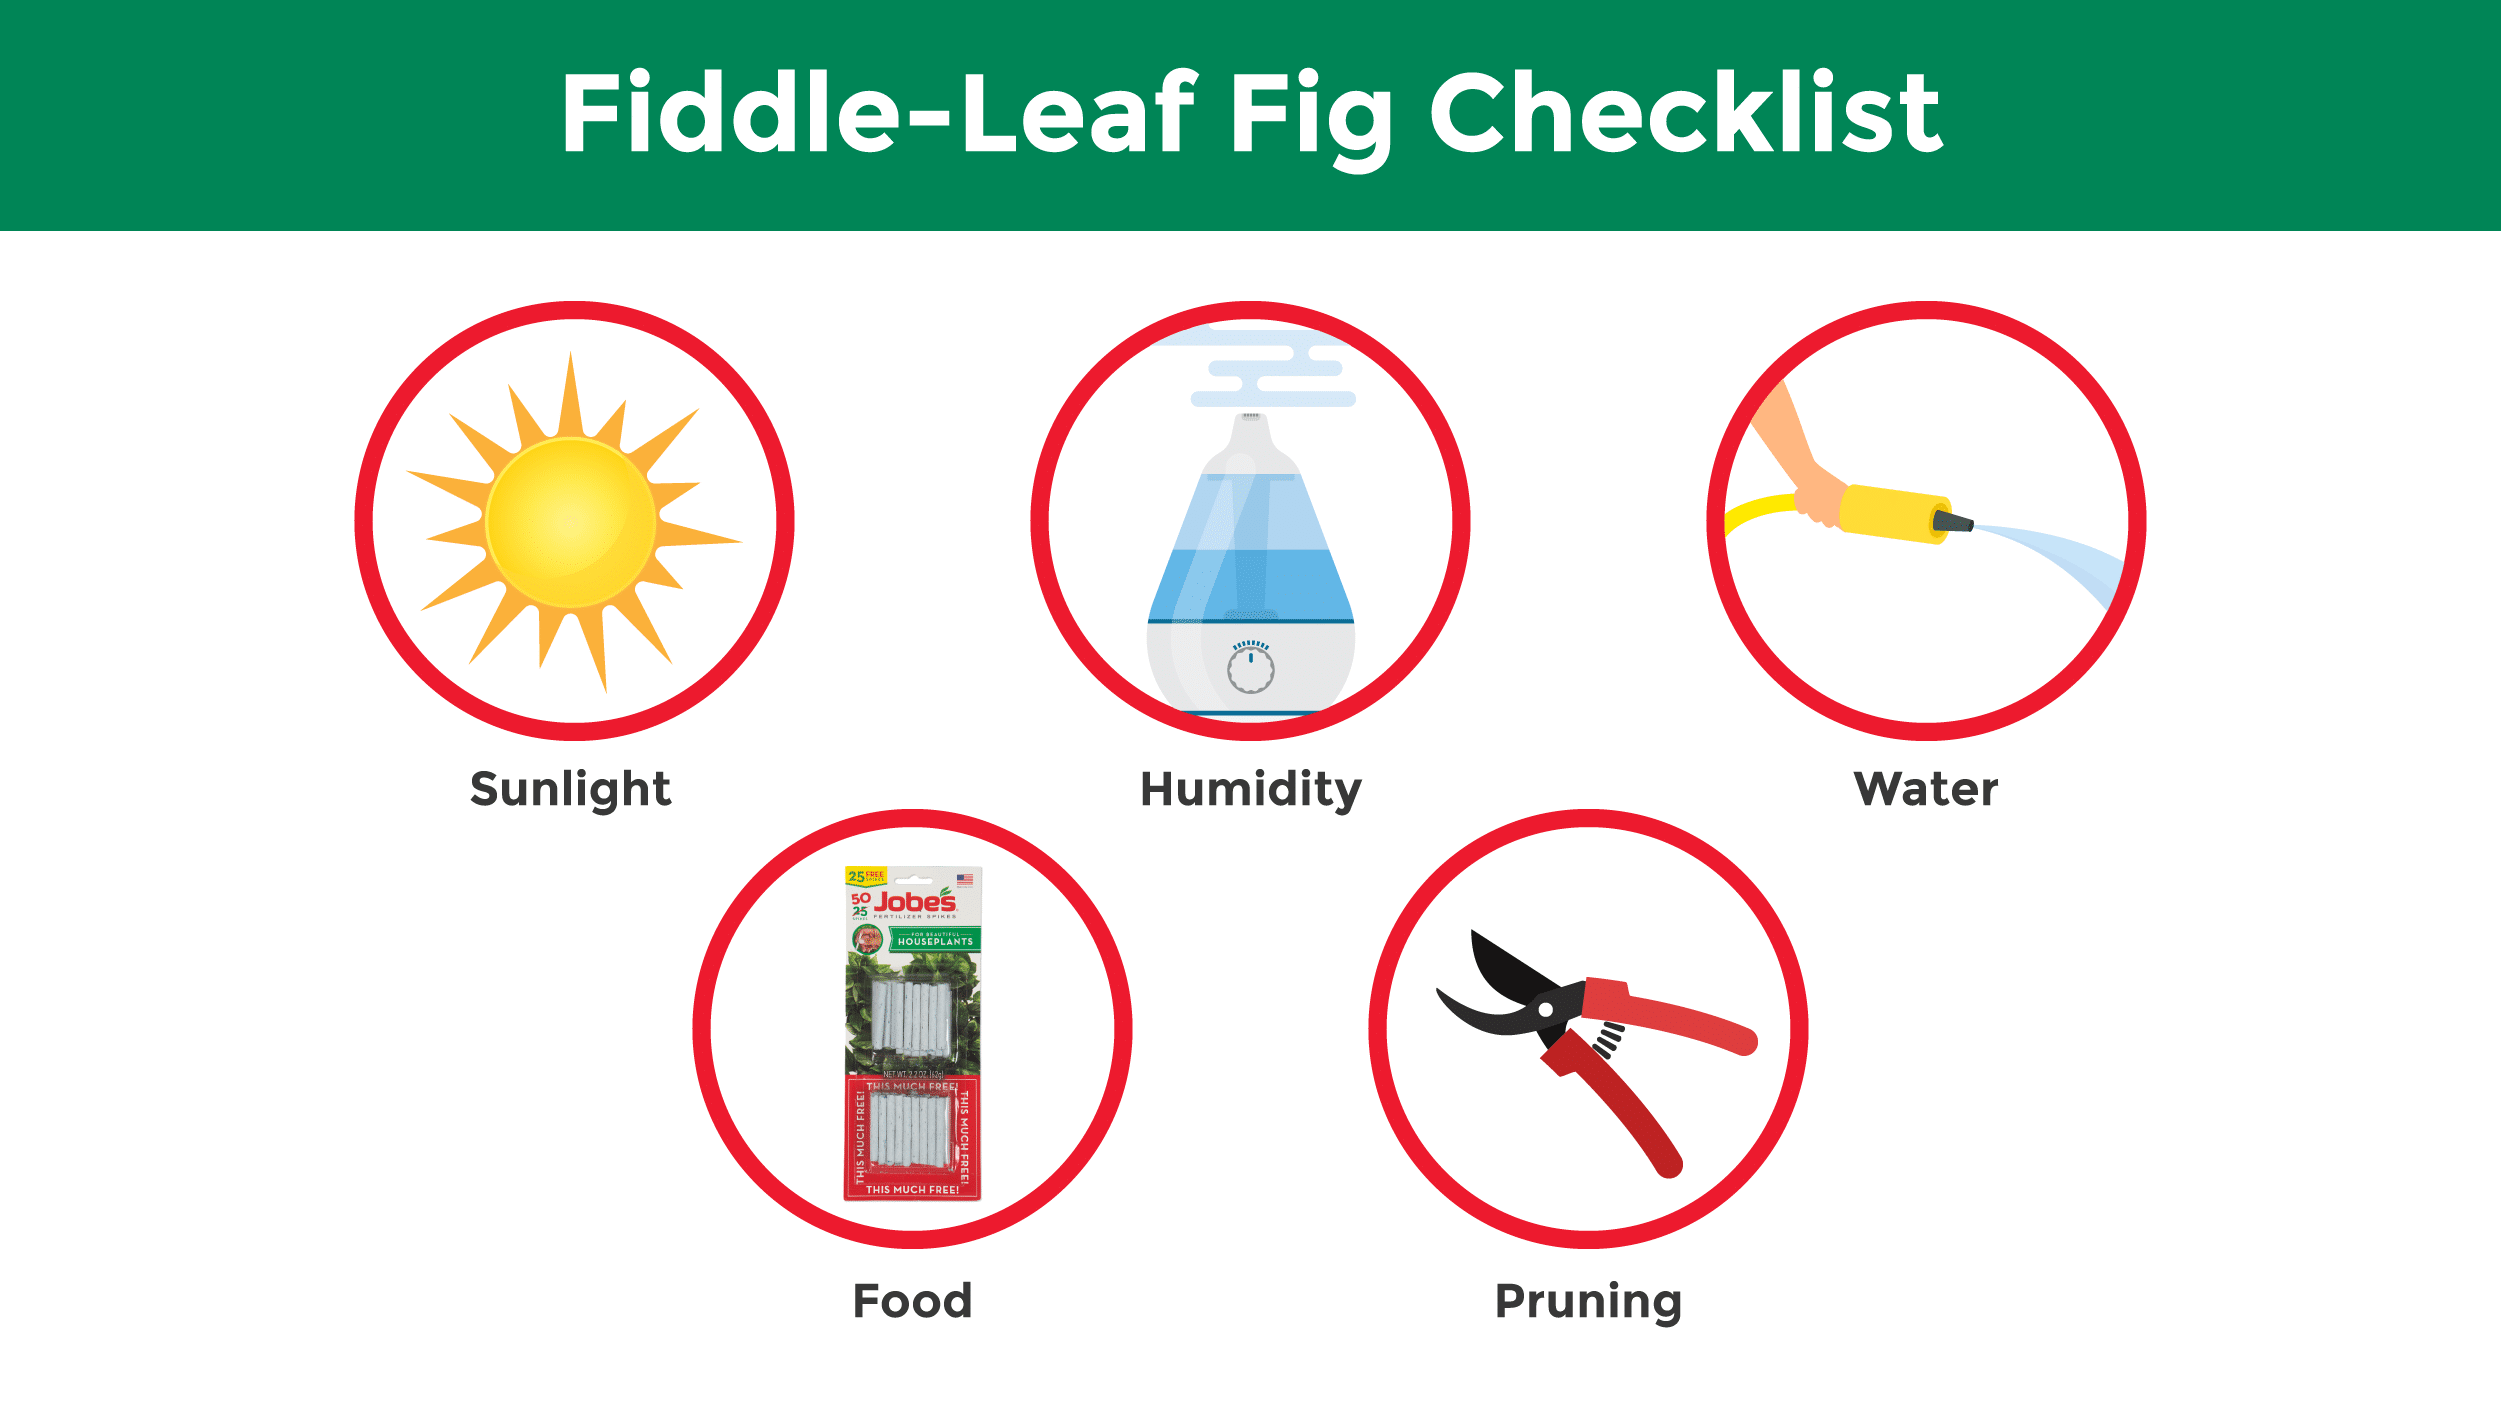 Illustration featuring a checklist of the best steps for a flourishing fiddle-leaf fig.